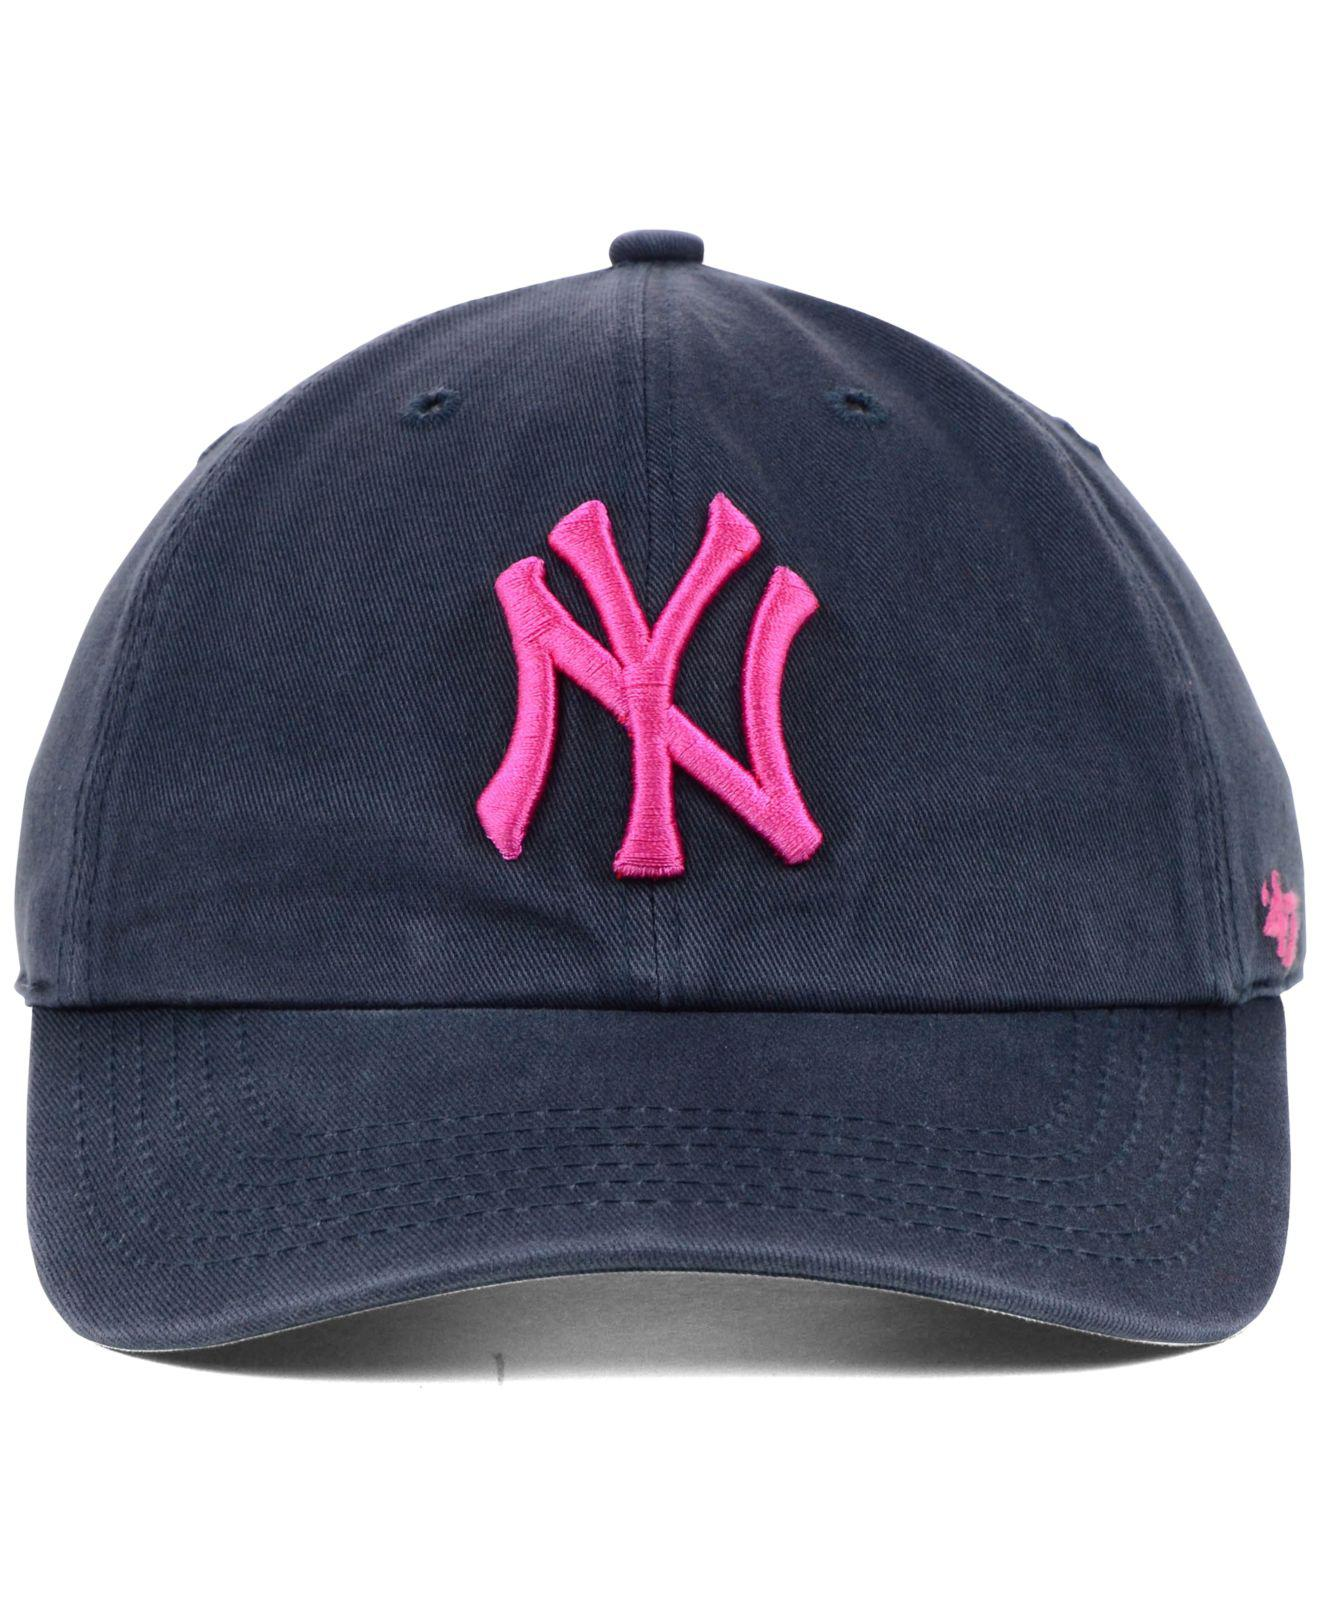 Lyst - 47 Brand New York Yankees Clean Up Cap in Blue for Men c42e261b3909